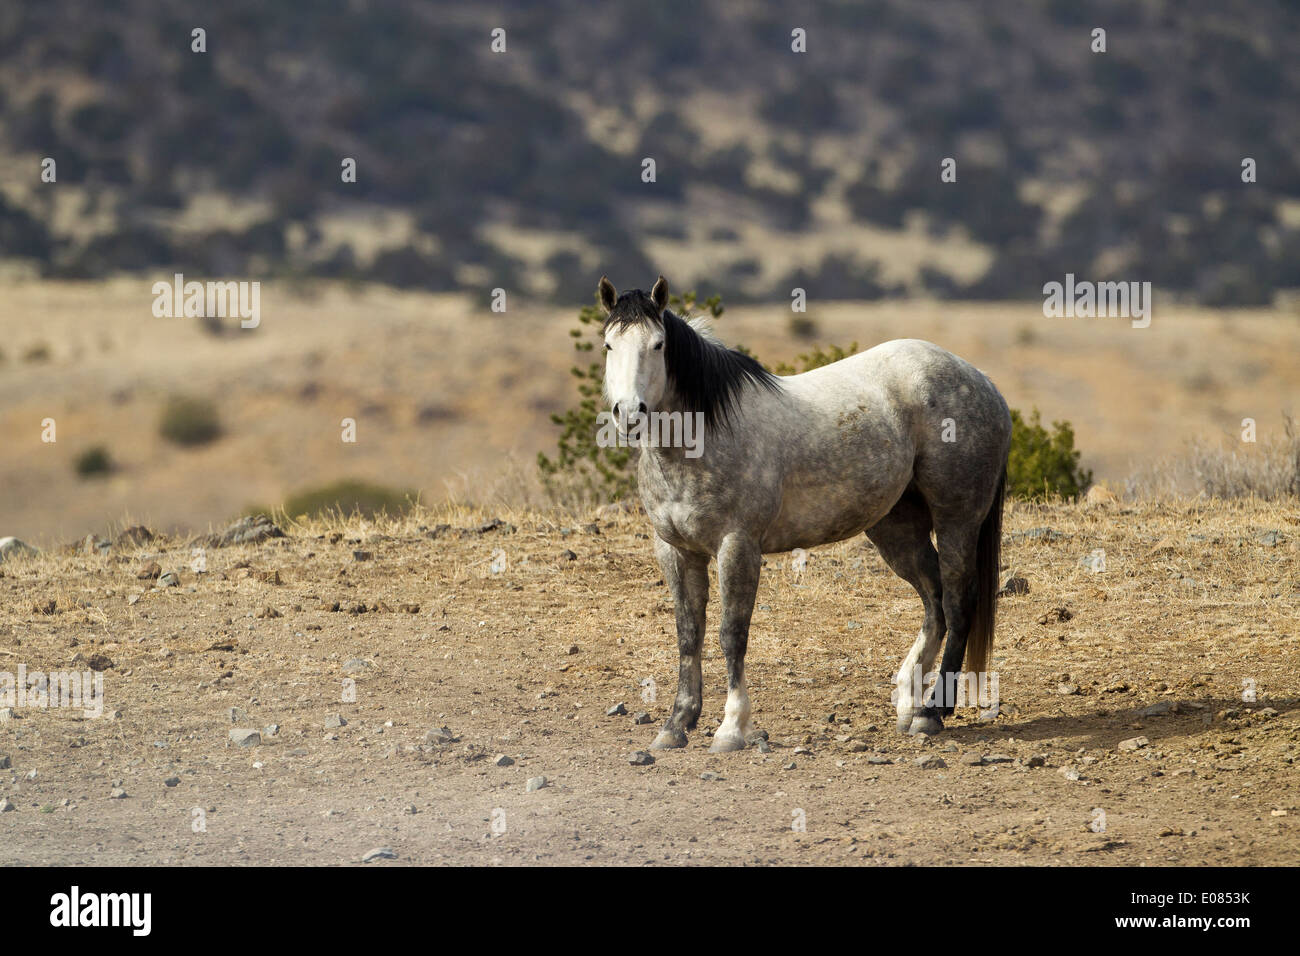 An appaloosa in New Mexico - Stock Image